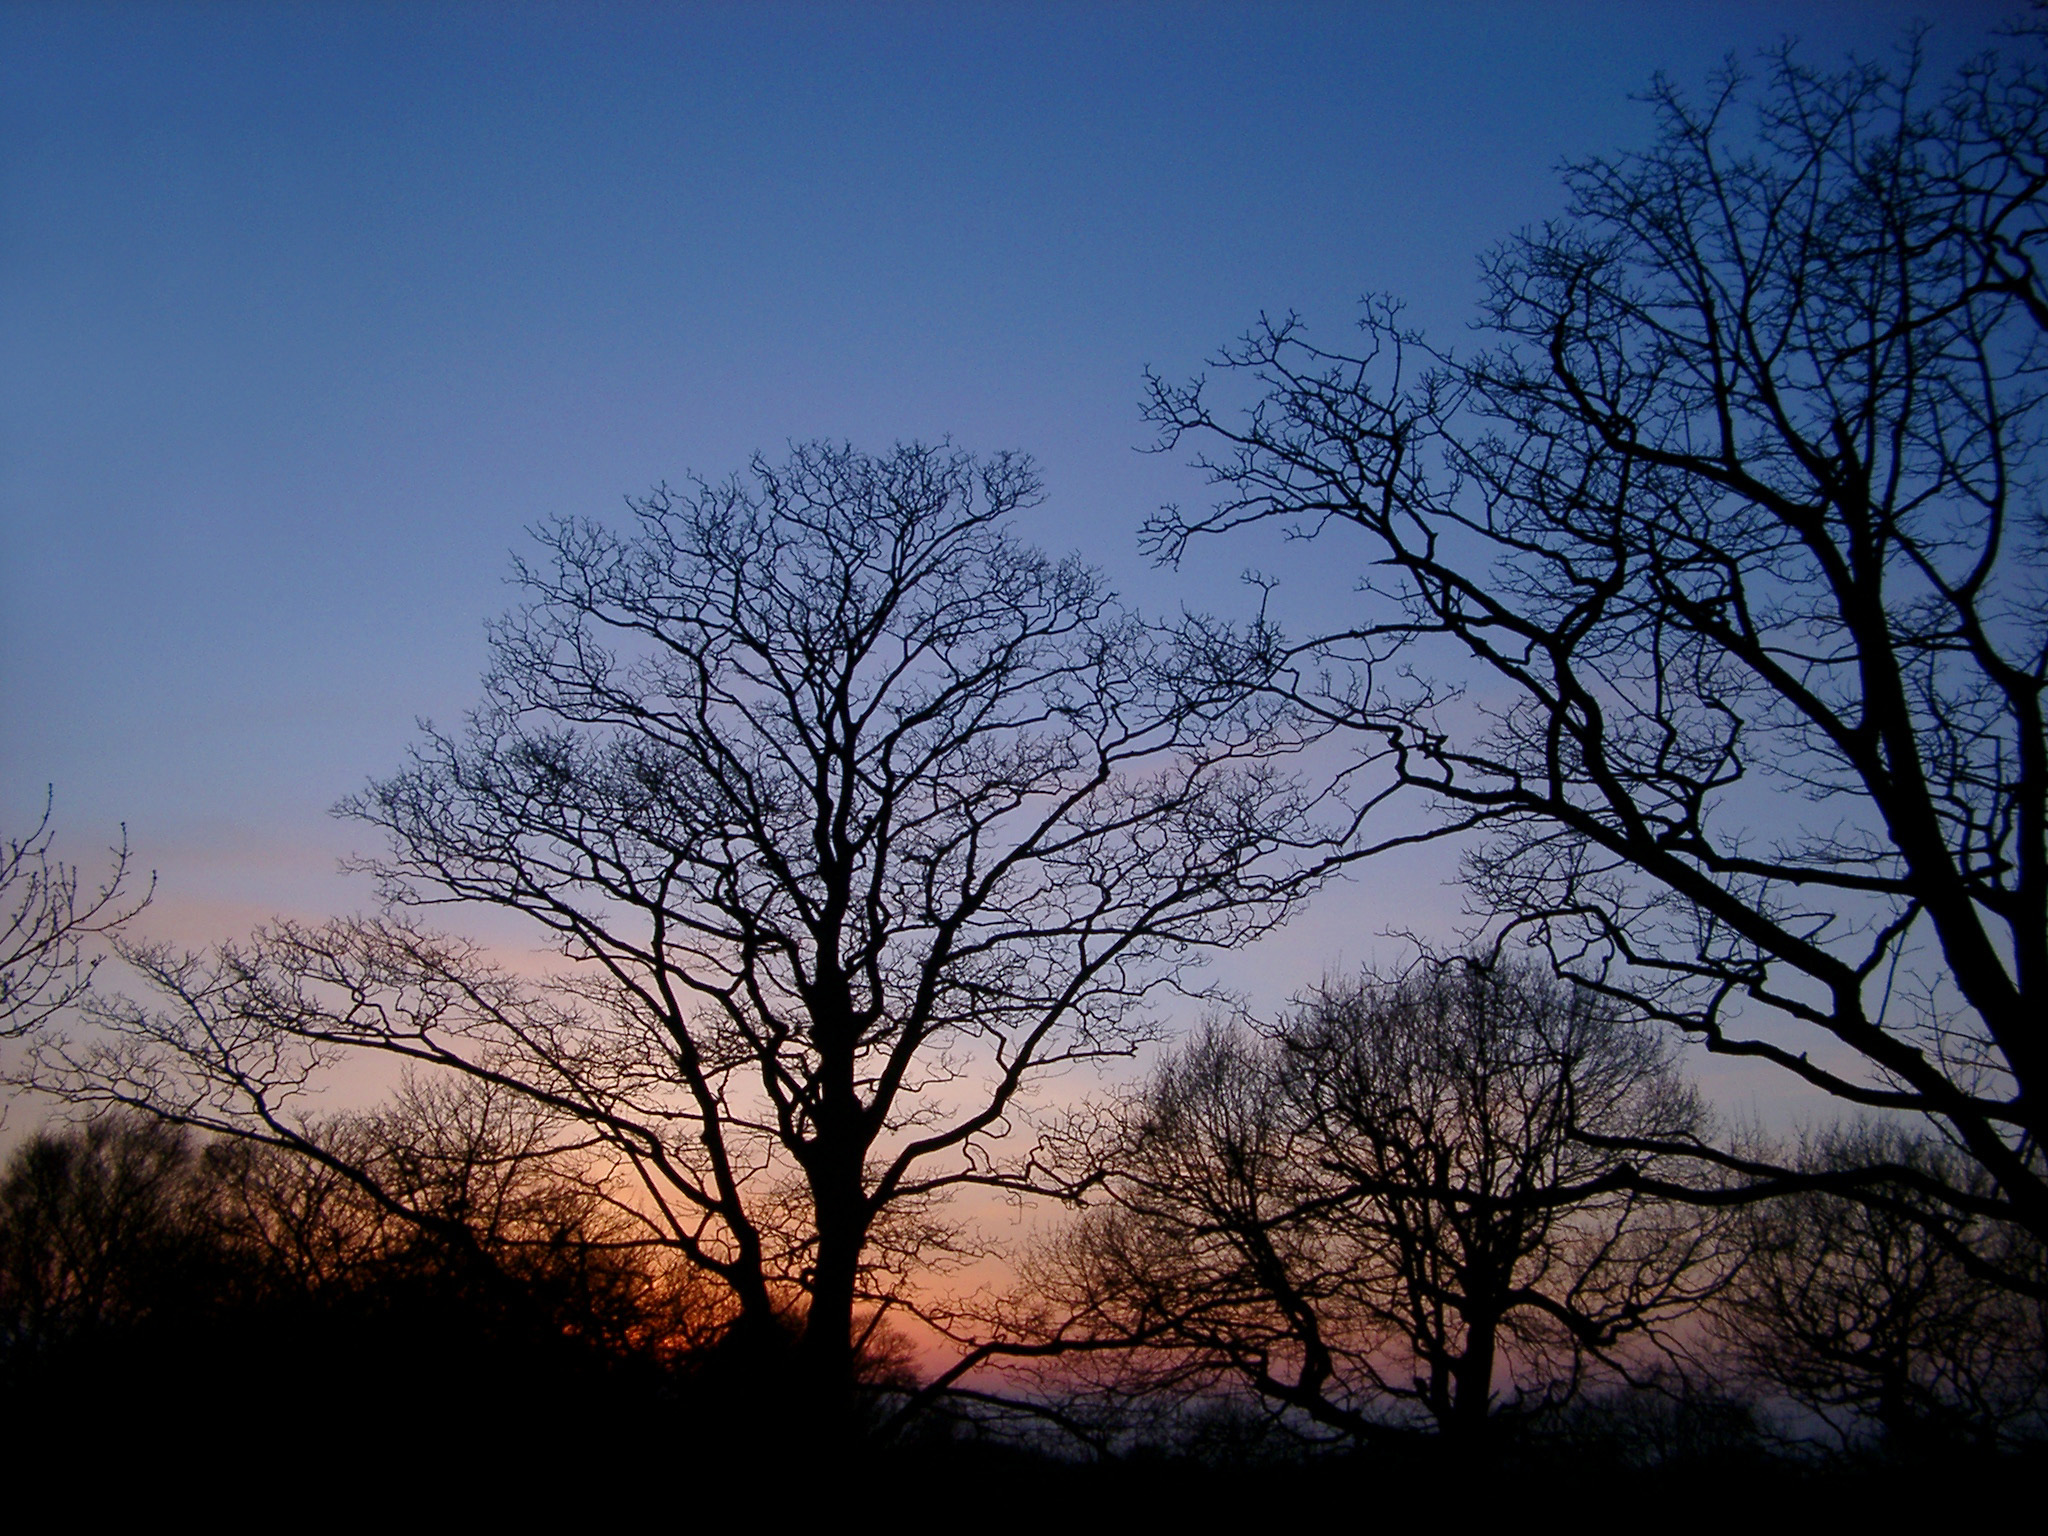 Free Stock photo of Silhouettes of bare deciduous trees at twilight ...